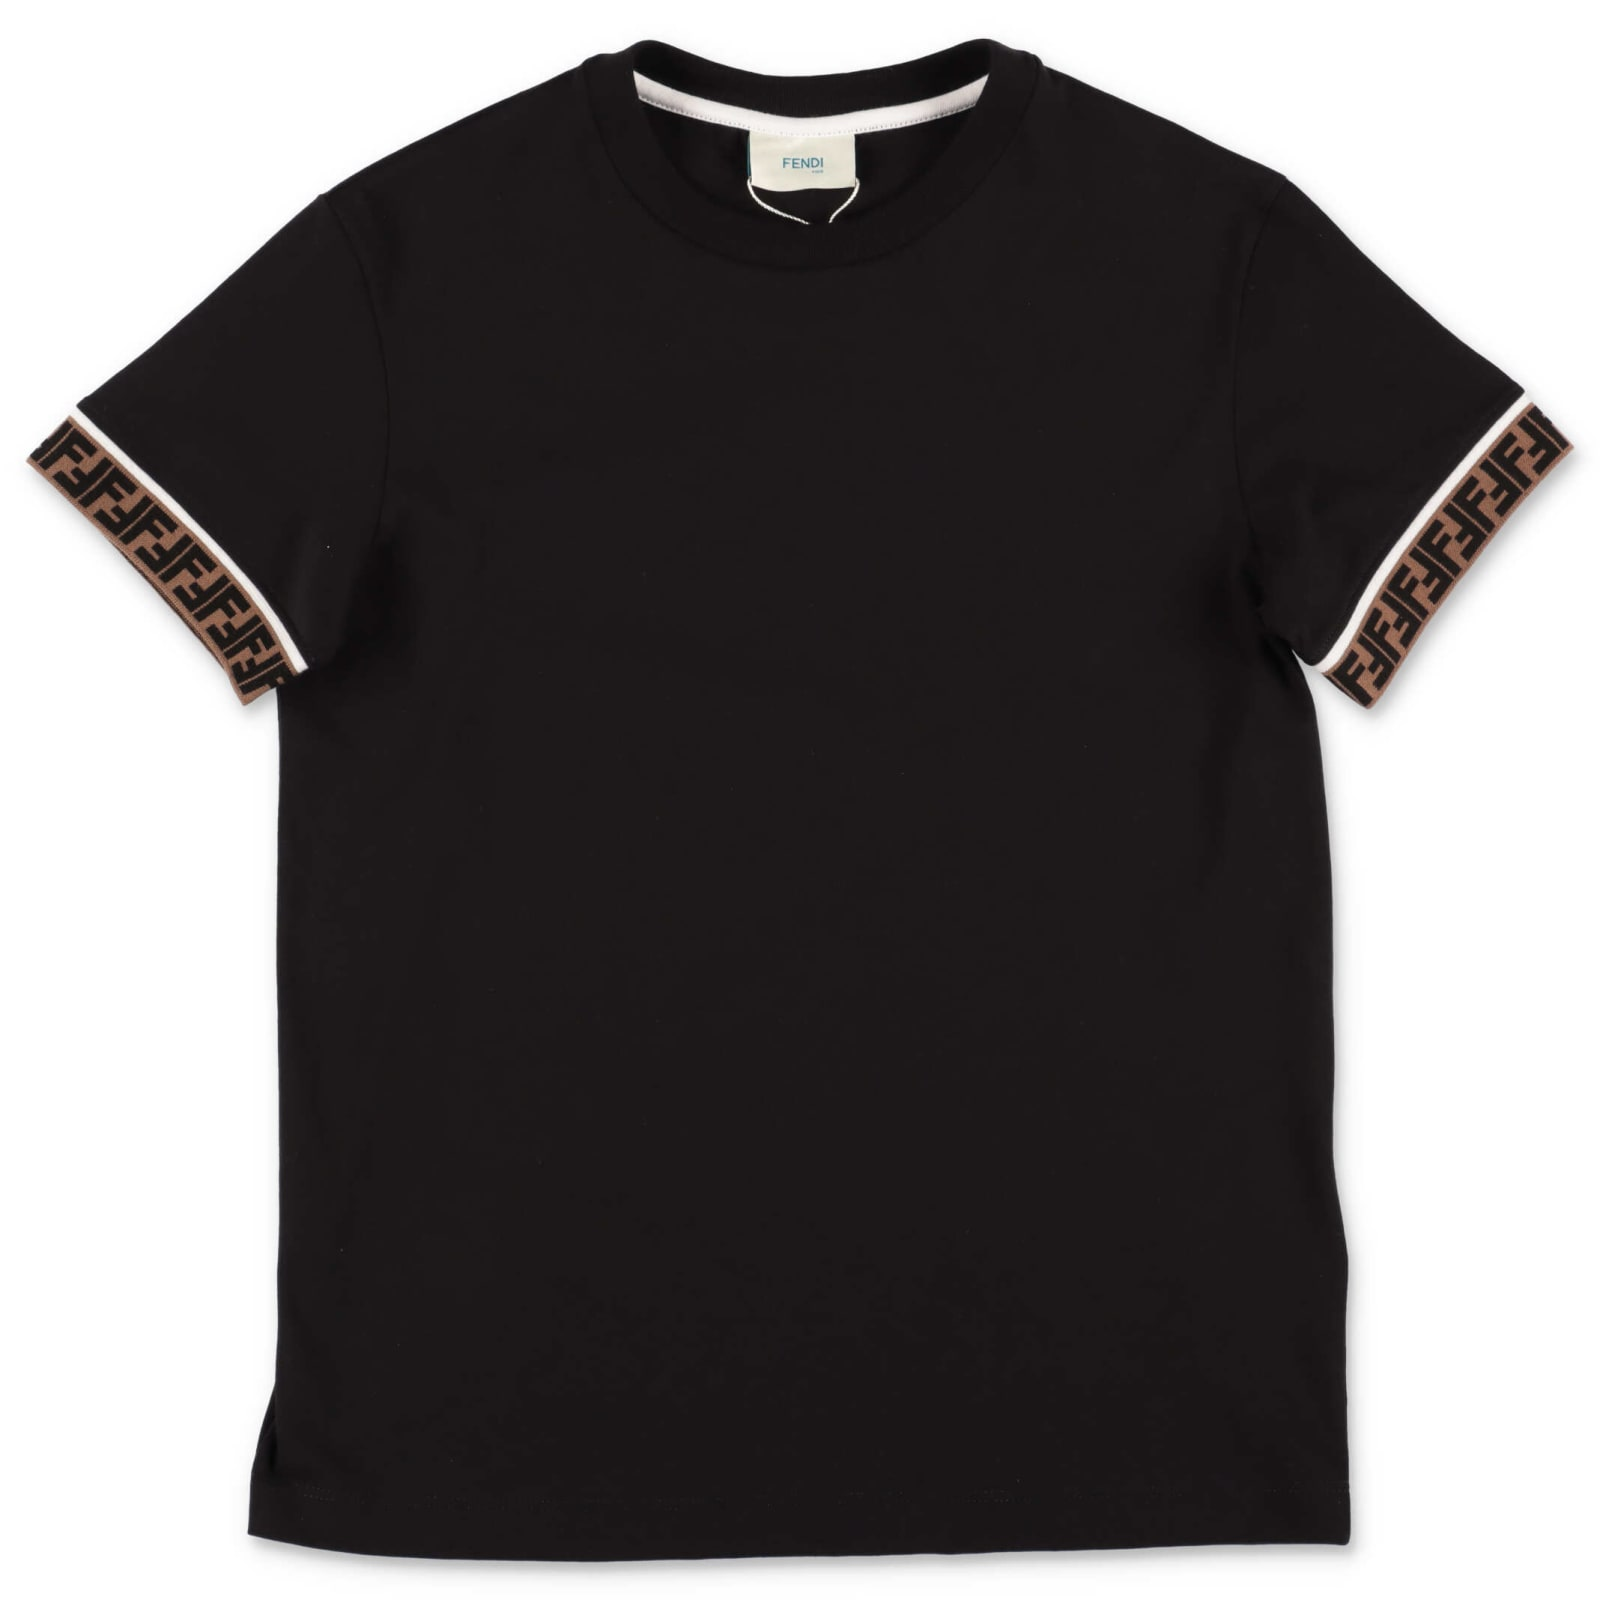 Fendi Kids' T-shirt In Nero